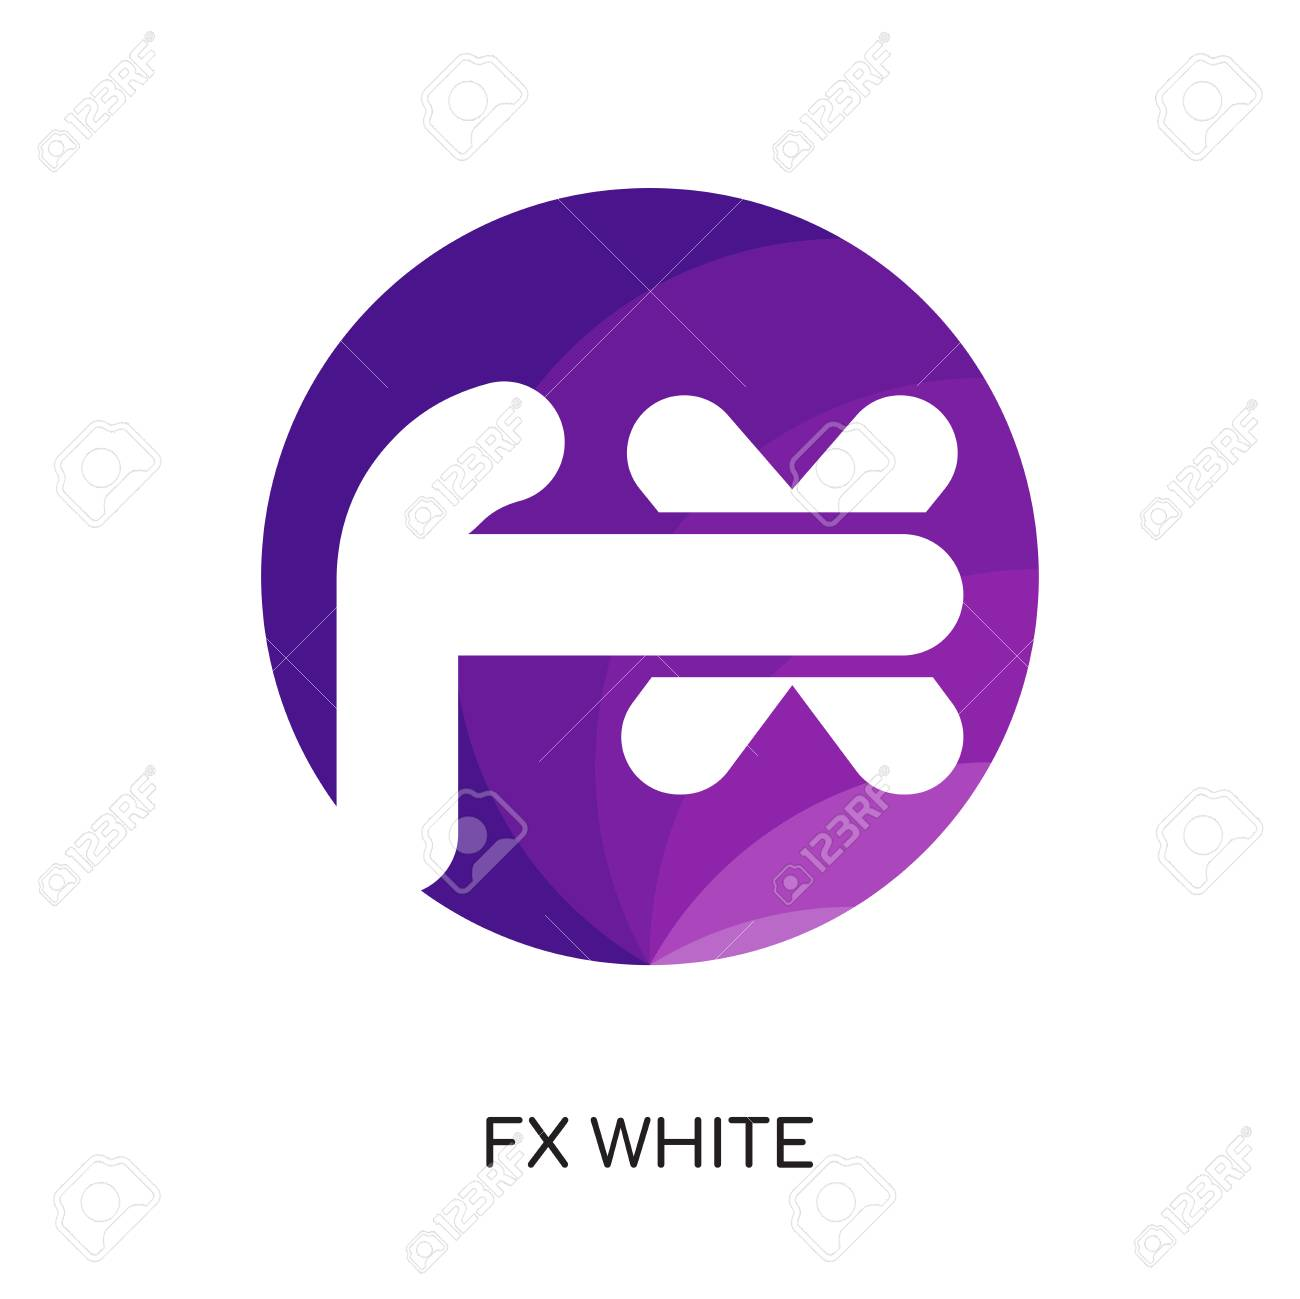 fx white logo isolated on white background for your web and mobile